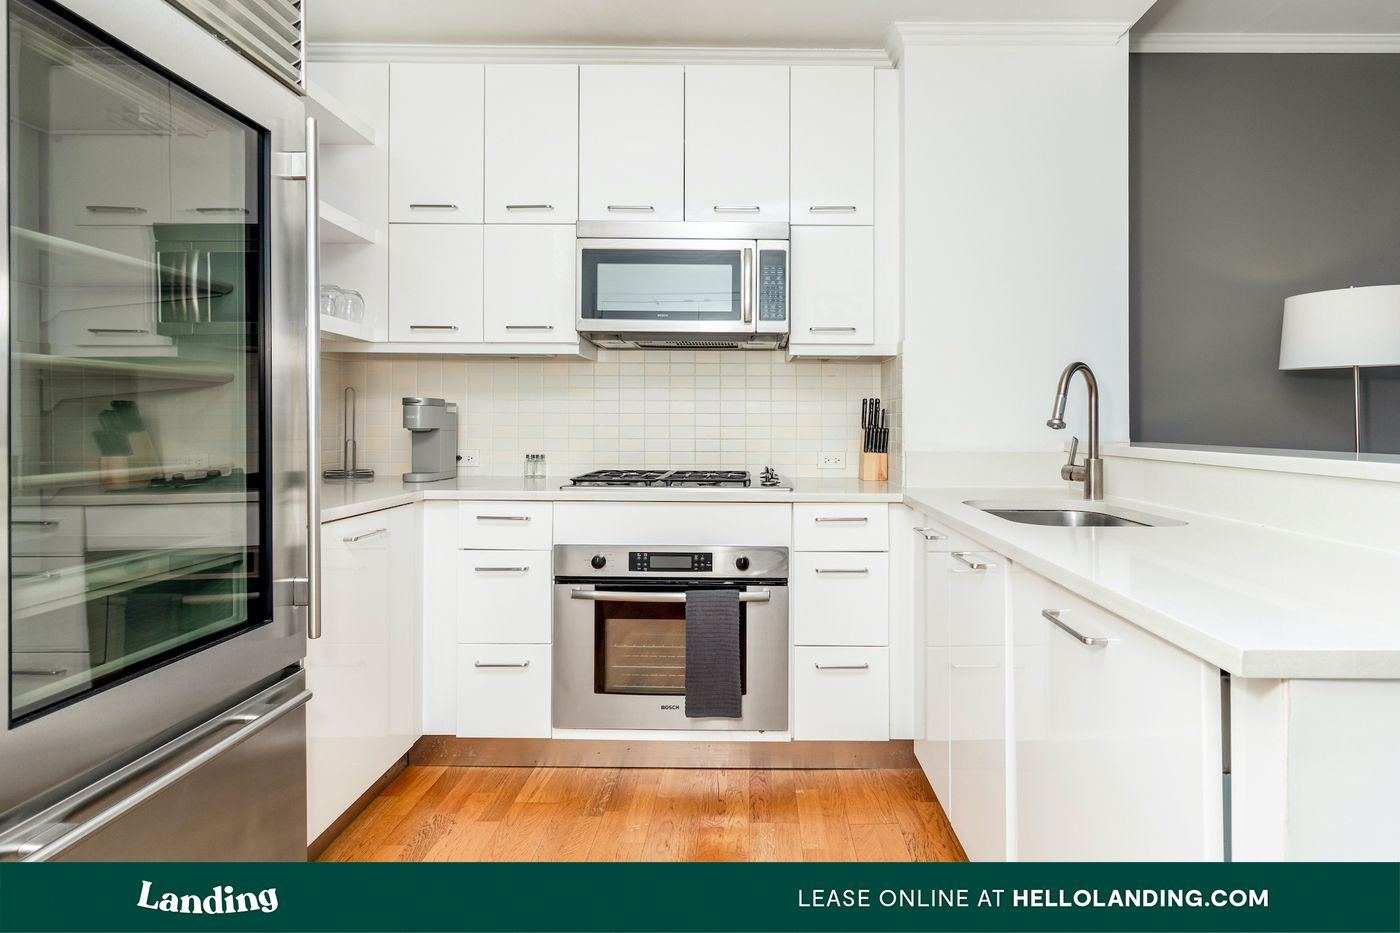 Landing Furnished Apartment Viridian Edge at the Park for rent